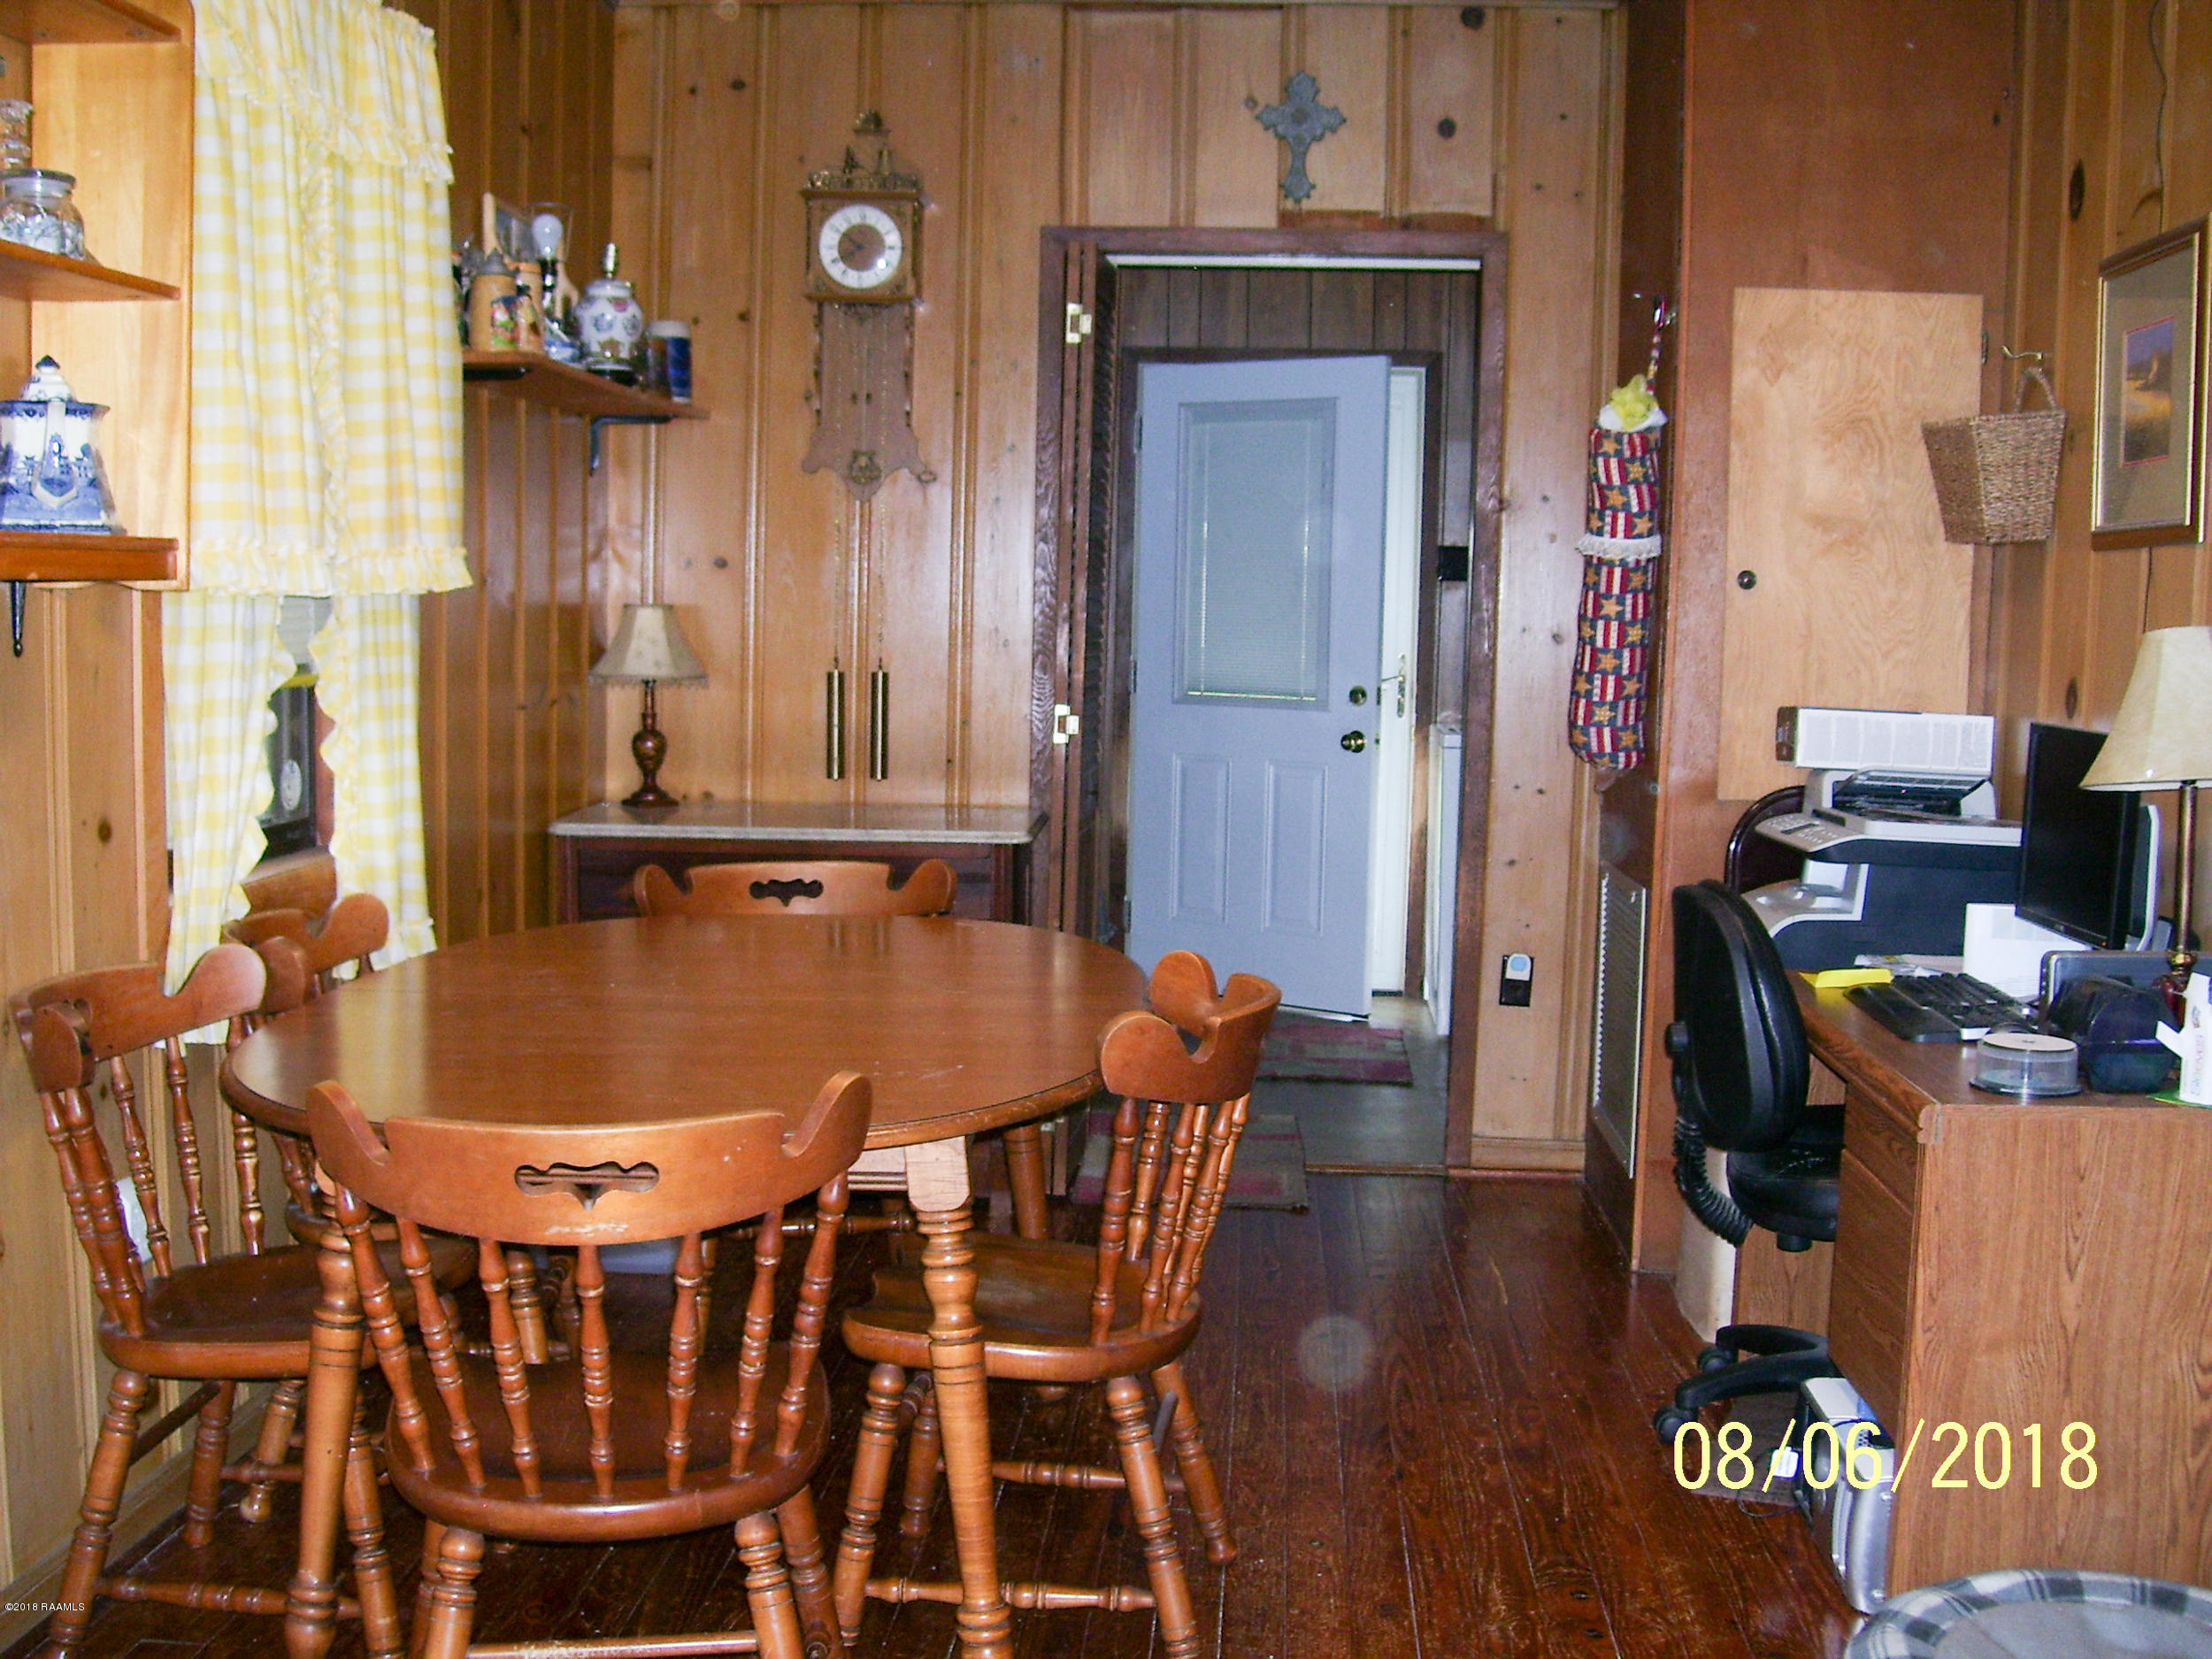 2619 Higginbotham, Church Point, LA 70525 Photo #7